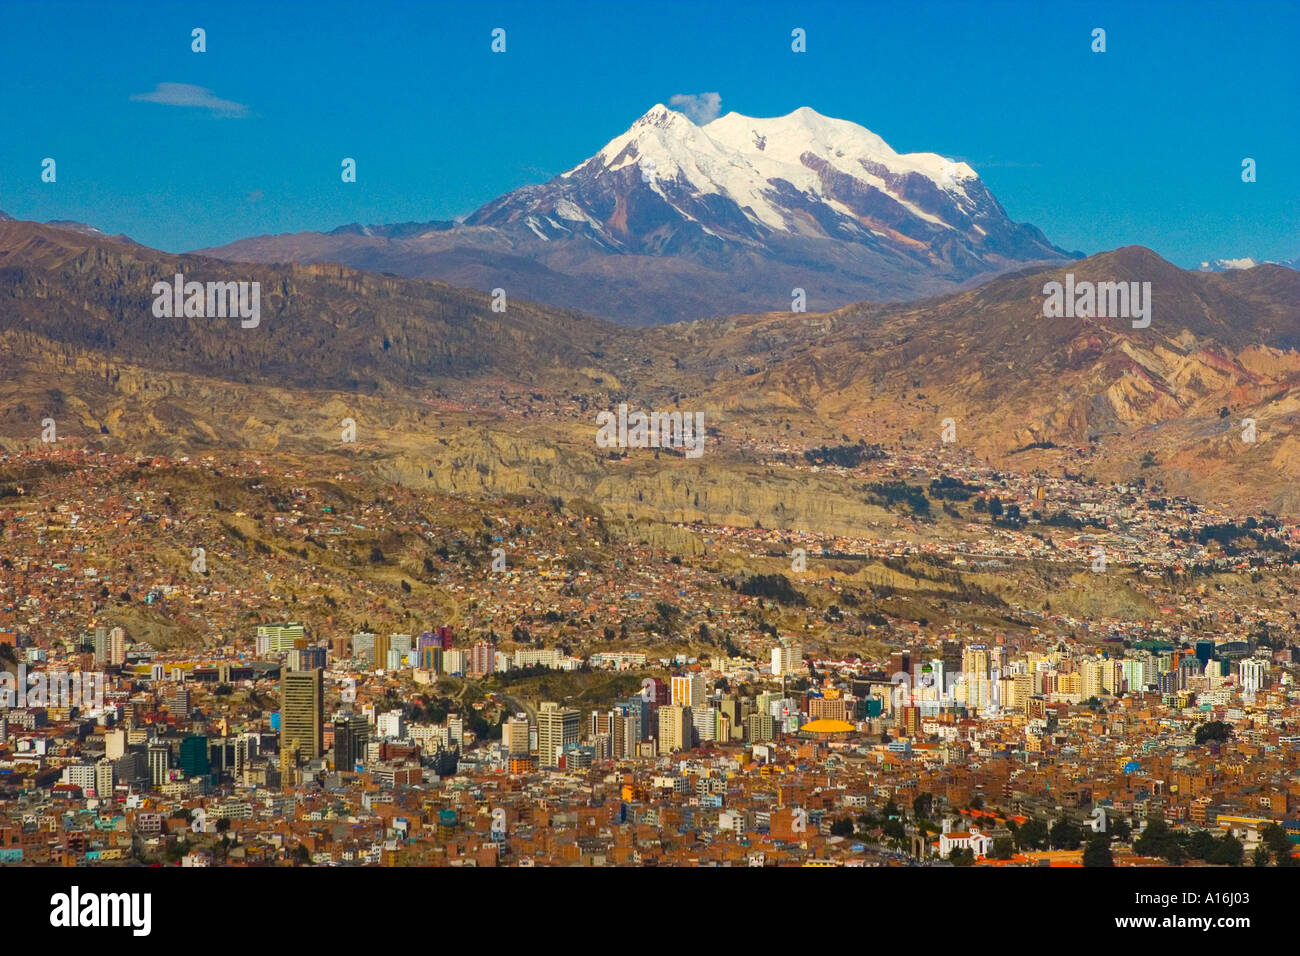 View of La Paz with Mount Illimani in the background - Stock Image